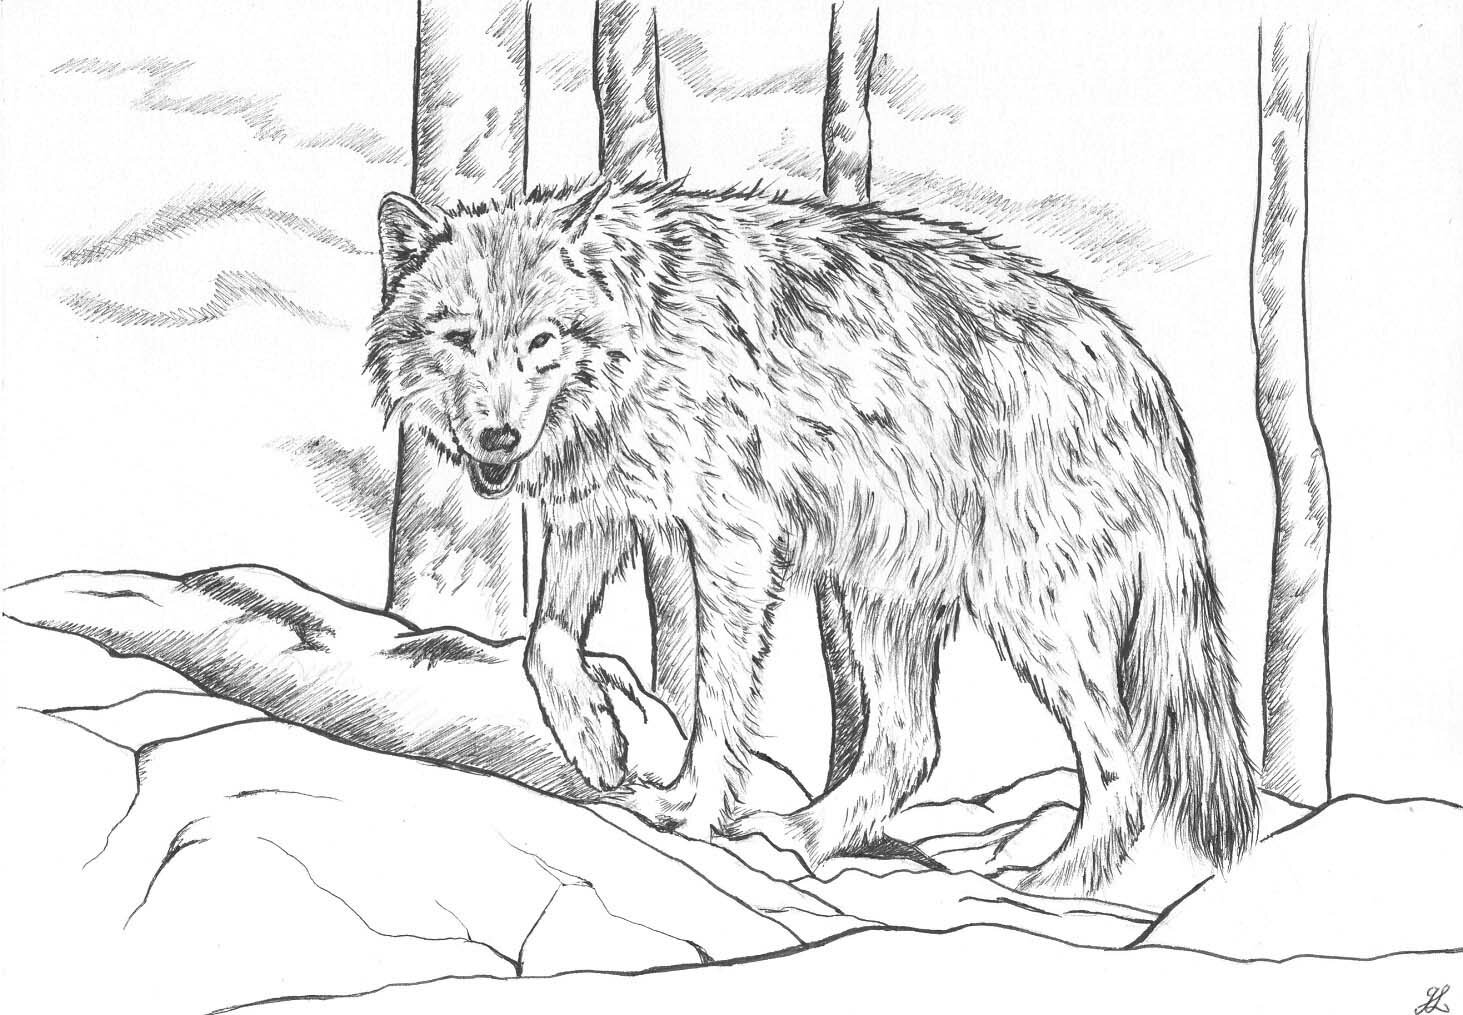 Coloriages dartiste - Coloriage loup ...